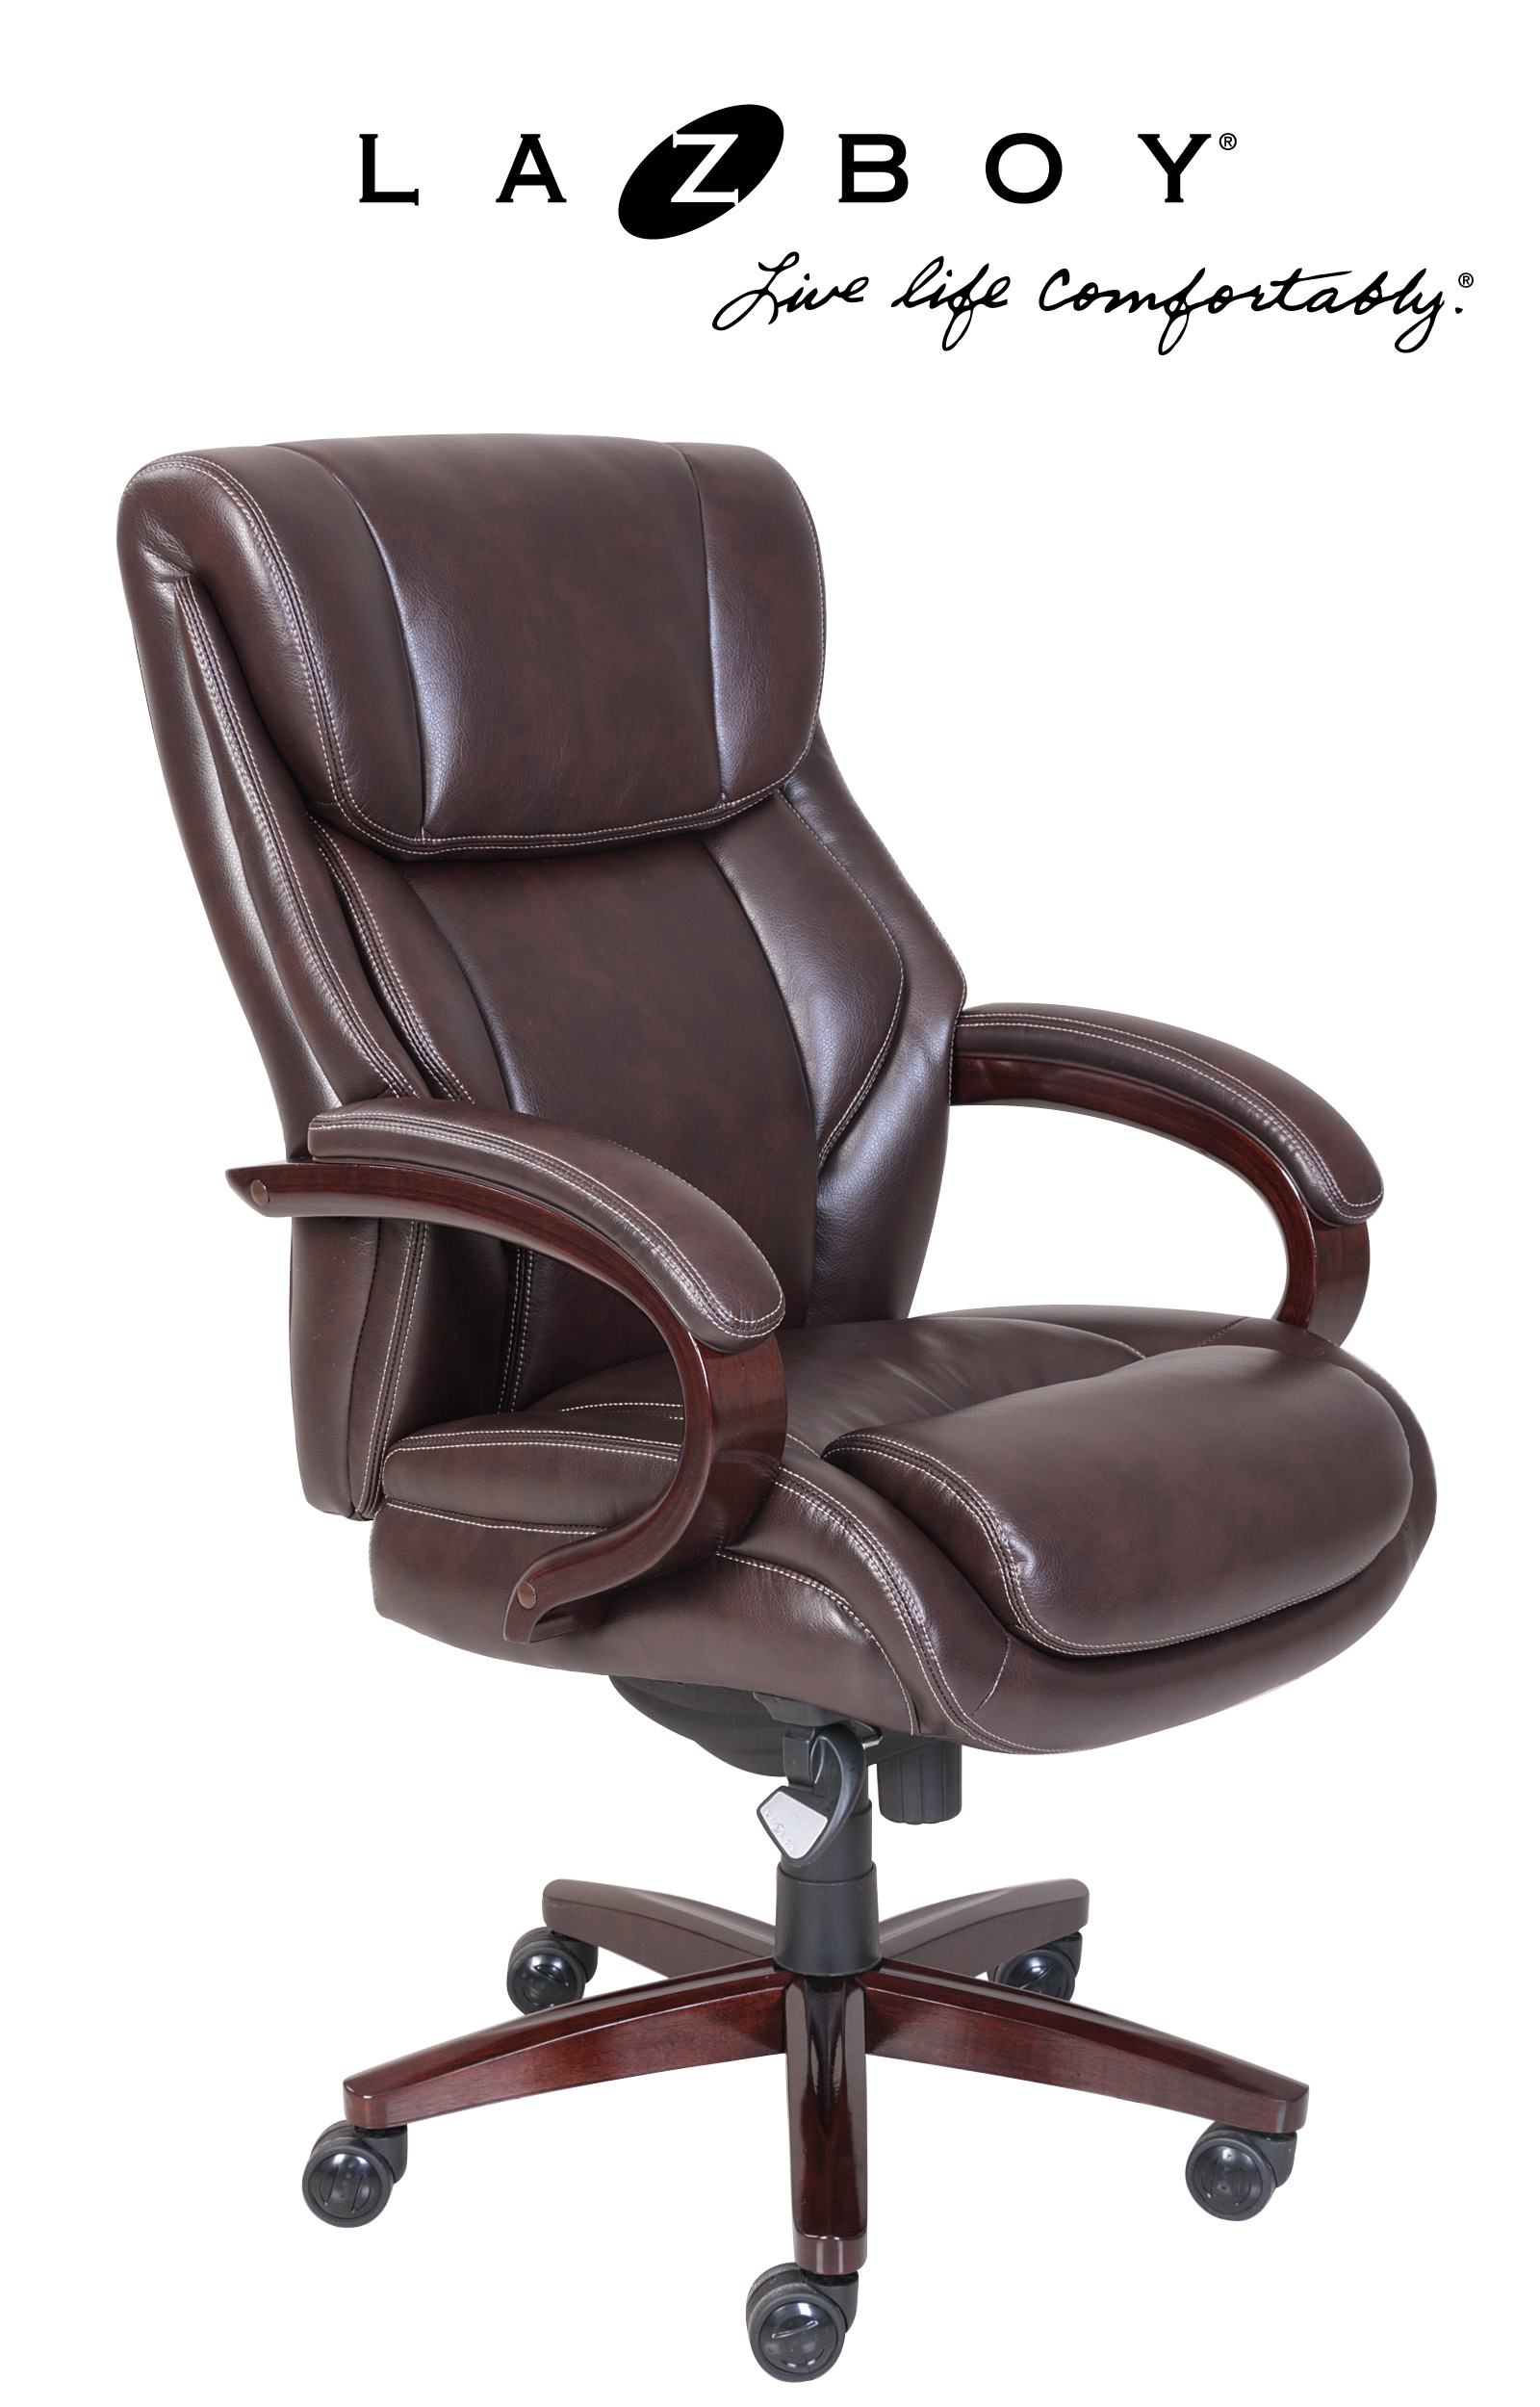 LaZBoy Bellamy Comfort Core Traditions Executive Office